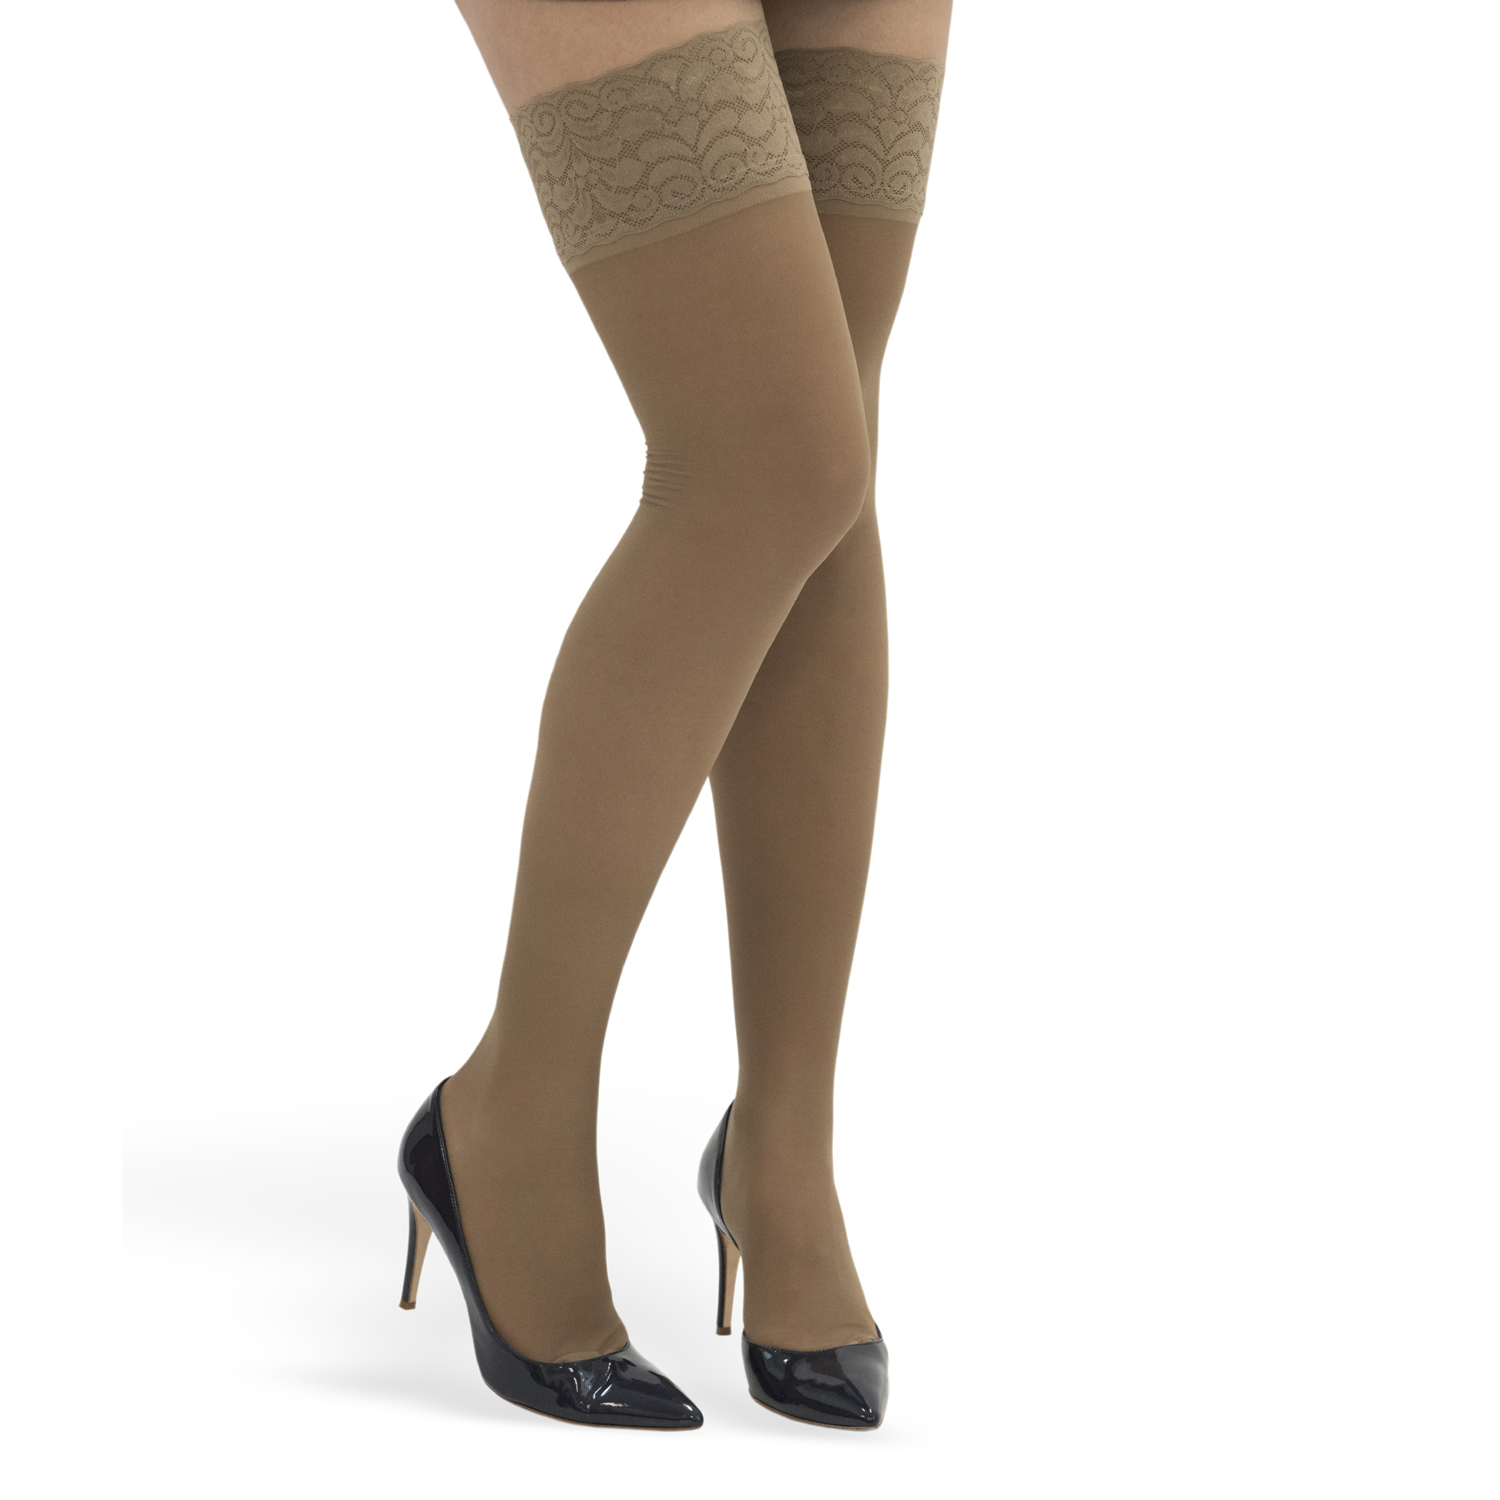 GABRIALLA Style H-80 Lace Top Sheer Thigh Highs